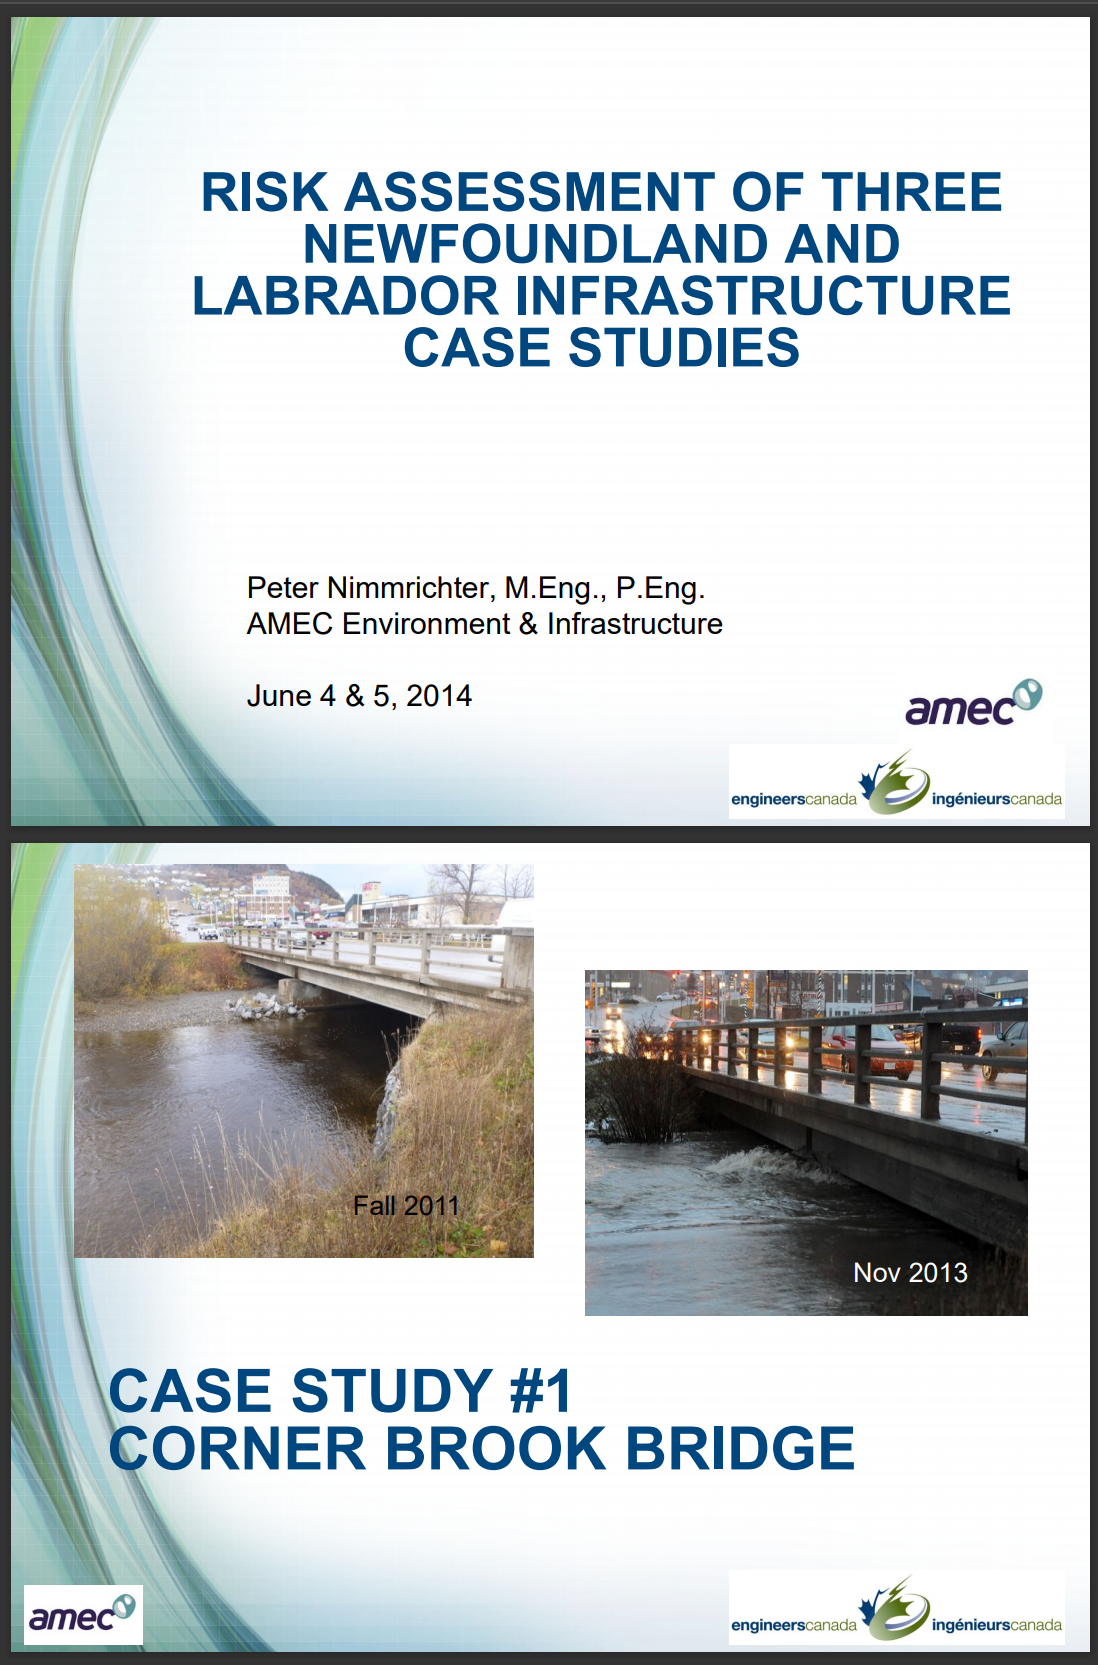 THREE NEWFOUNDLAND AND LABRADOR INFRASTRUCTURE CASE STUDIES